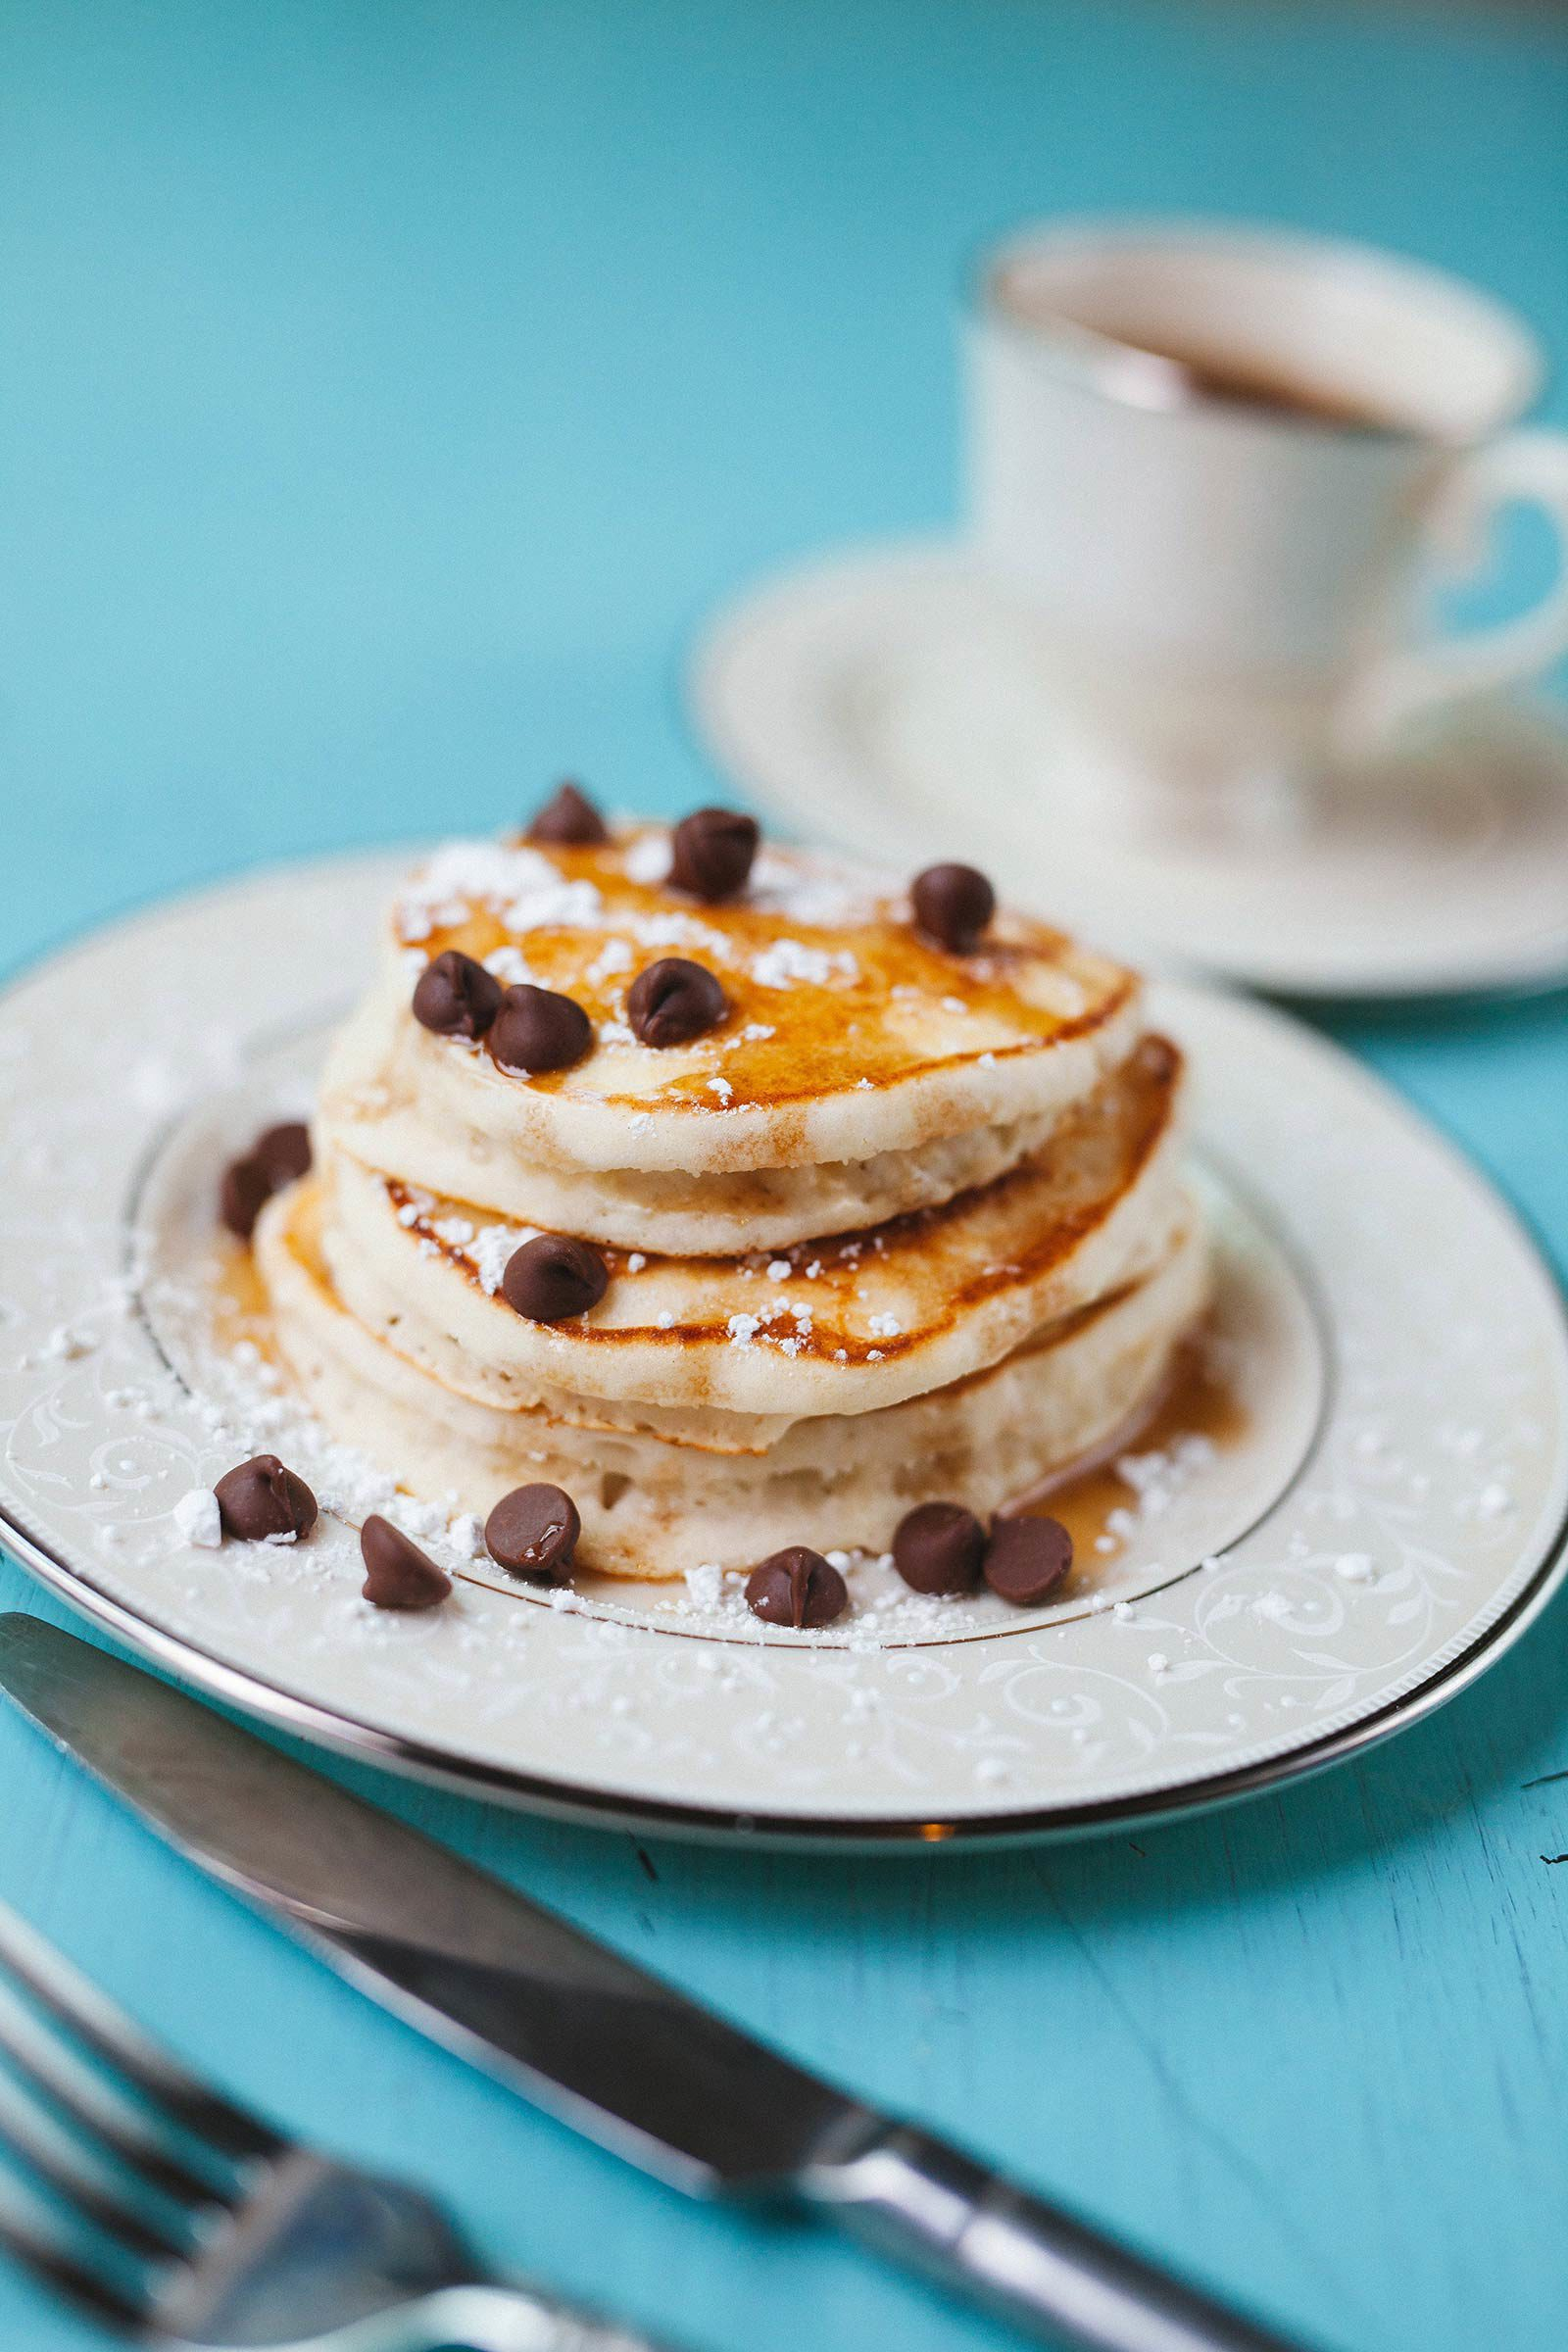 Stack of pancakes with chocolate chips and powdered sugar on blue table next to utensils and coffee.